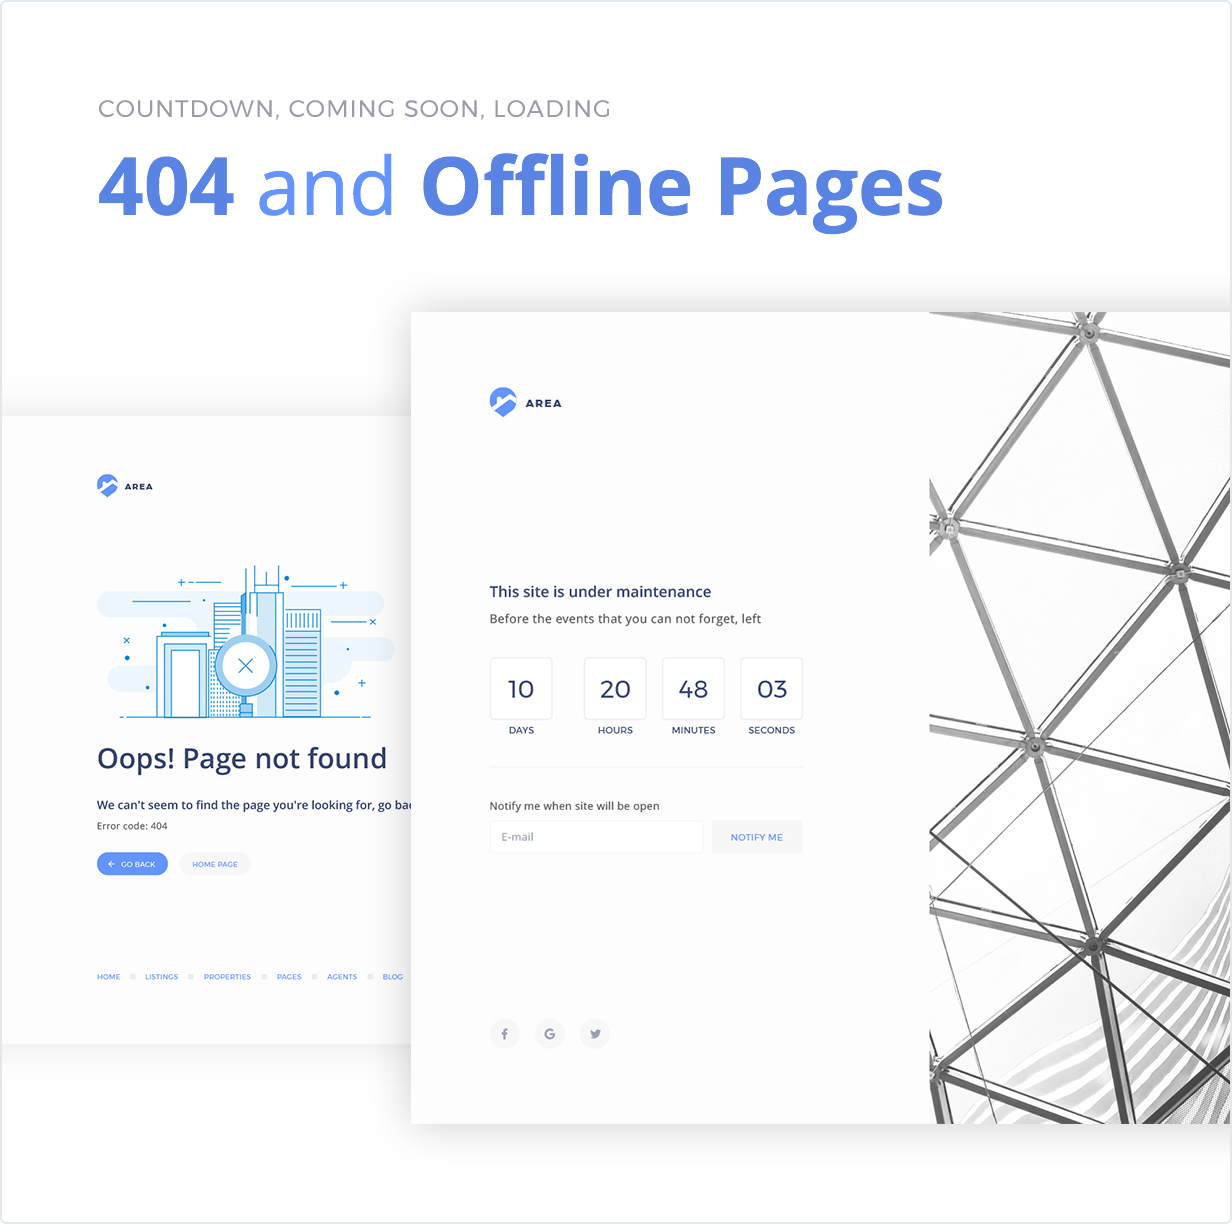 Countdown, Coming Soon, Loading, 404 and Offline Pages